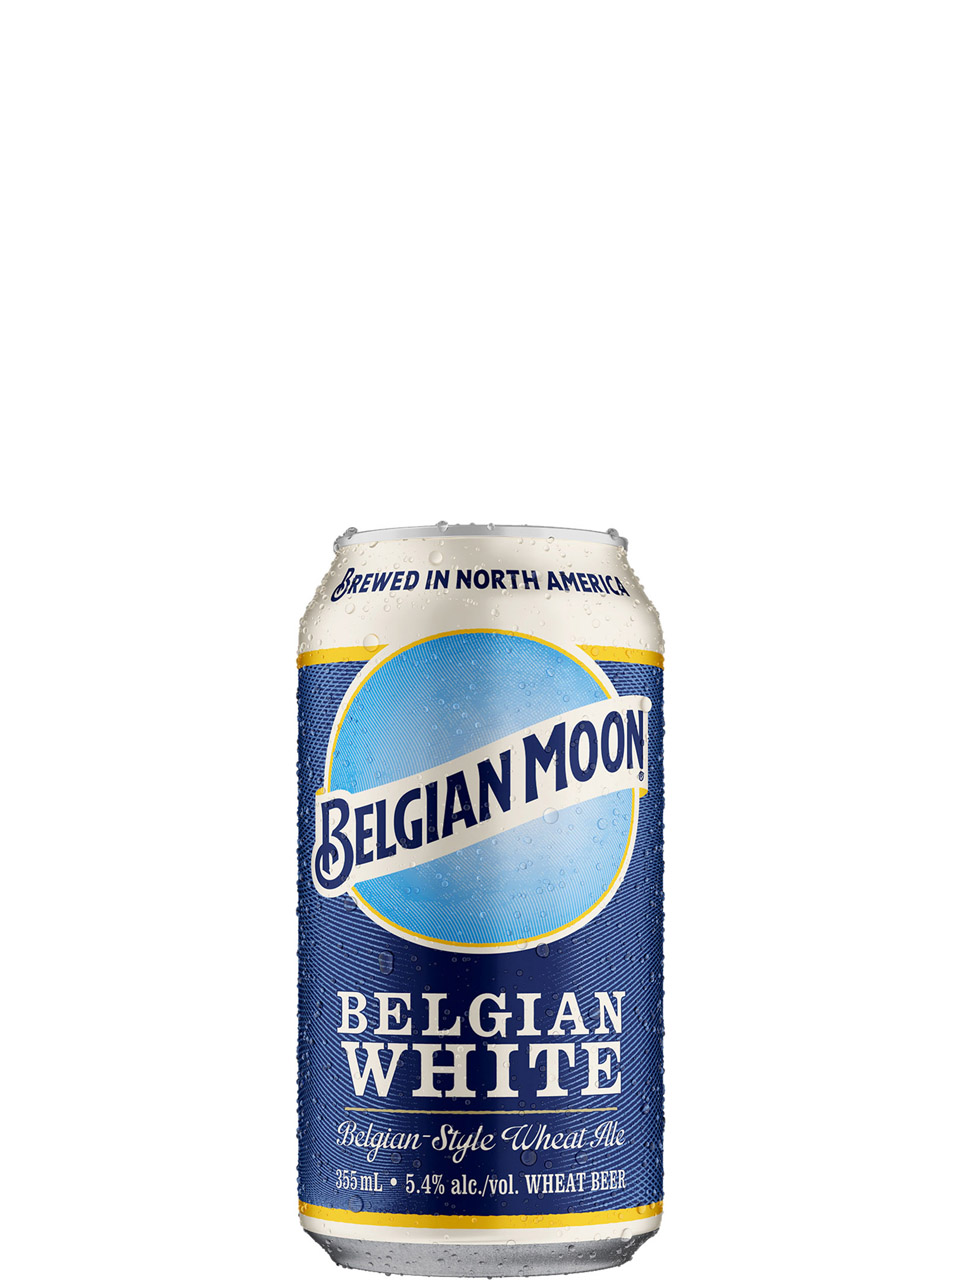 Belgian Moon White 8 Pack Cans